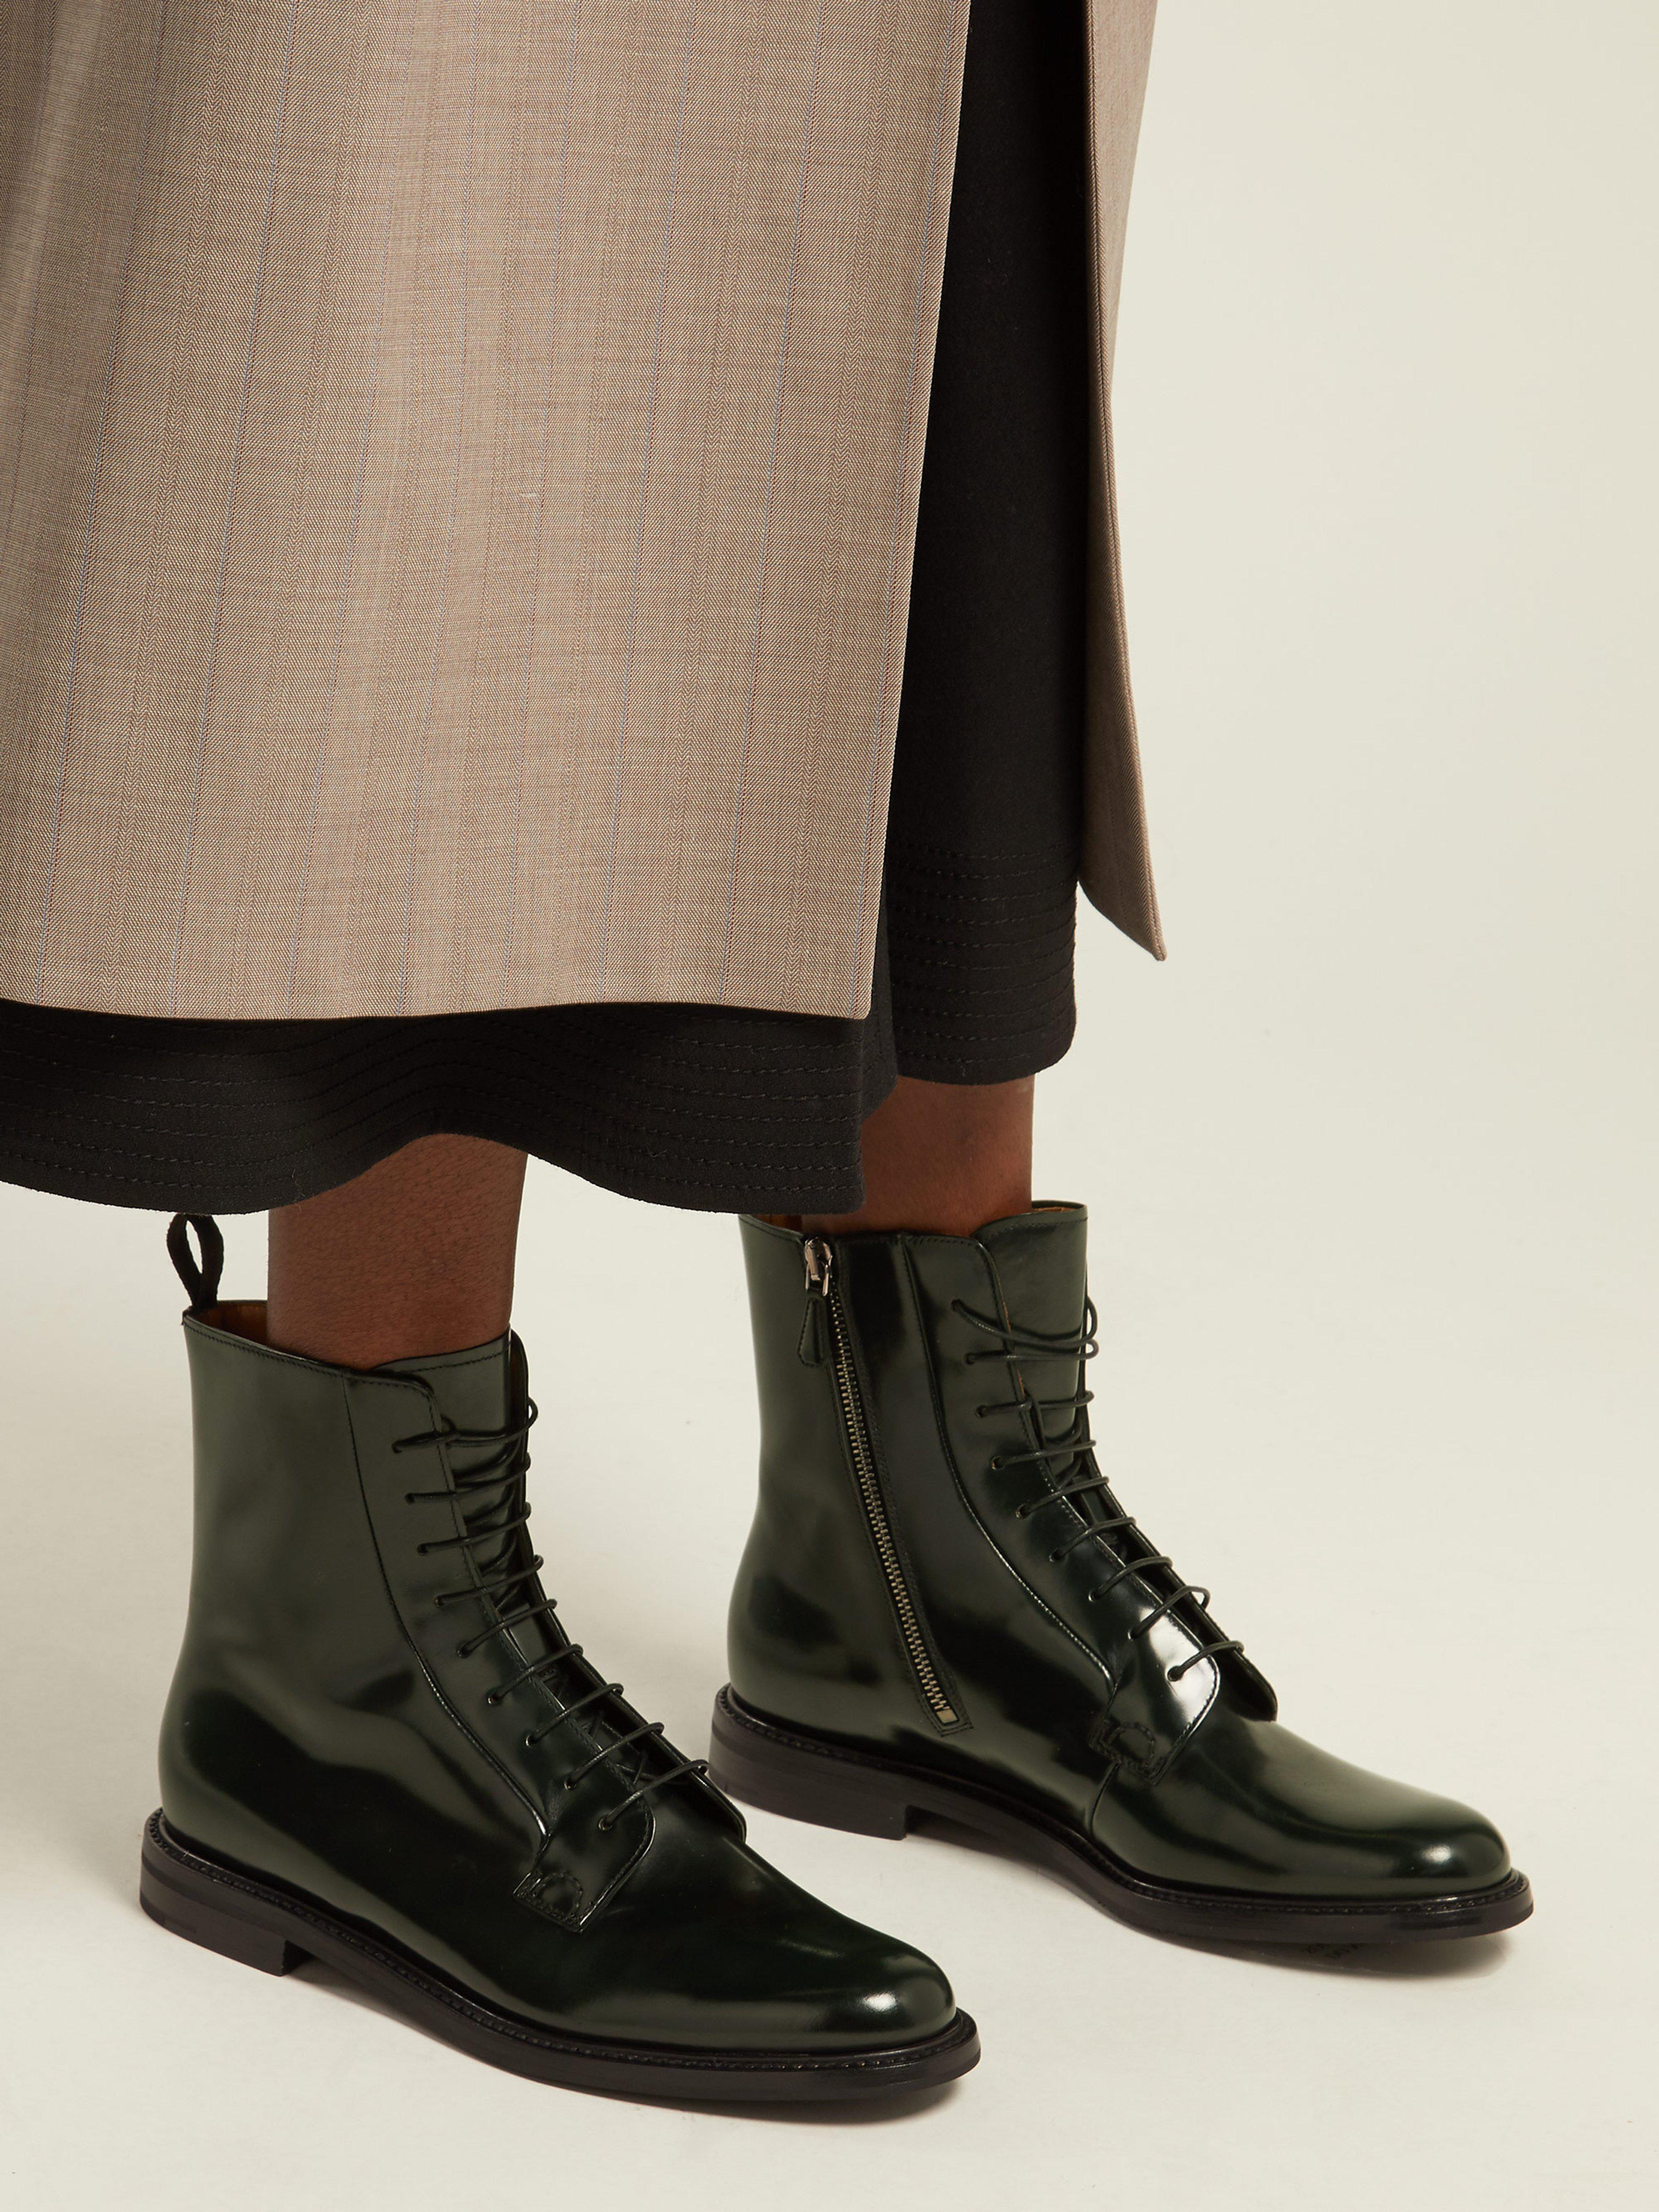 new product feab2 4fa1d churchs-dark-green-Alexandra-Lace-Up-Leather-Ankle-Boots.jpeg